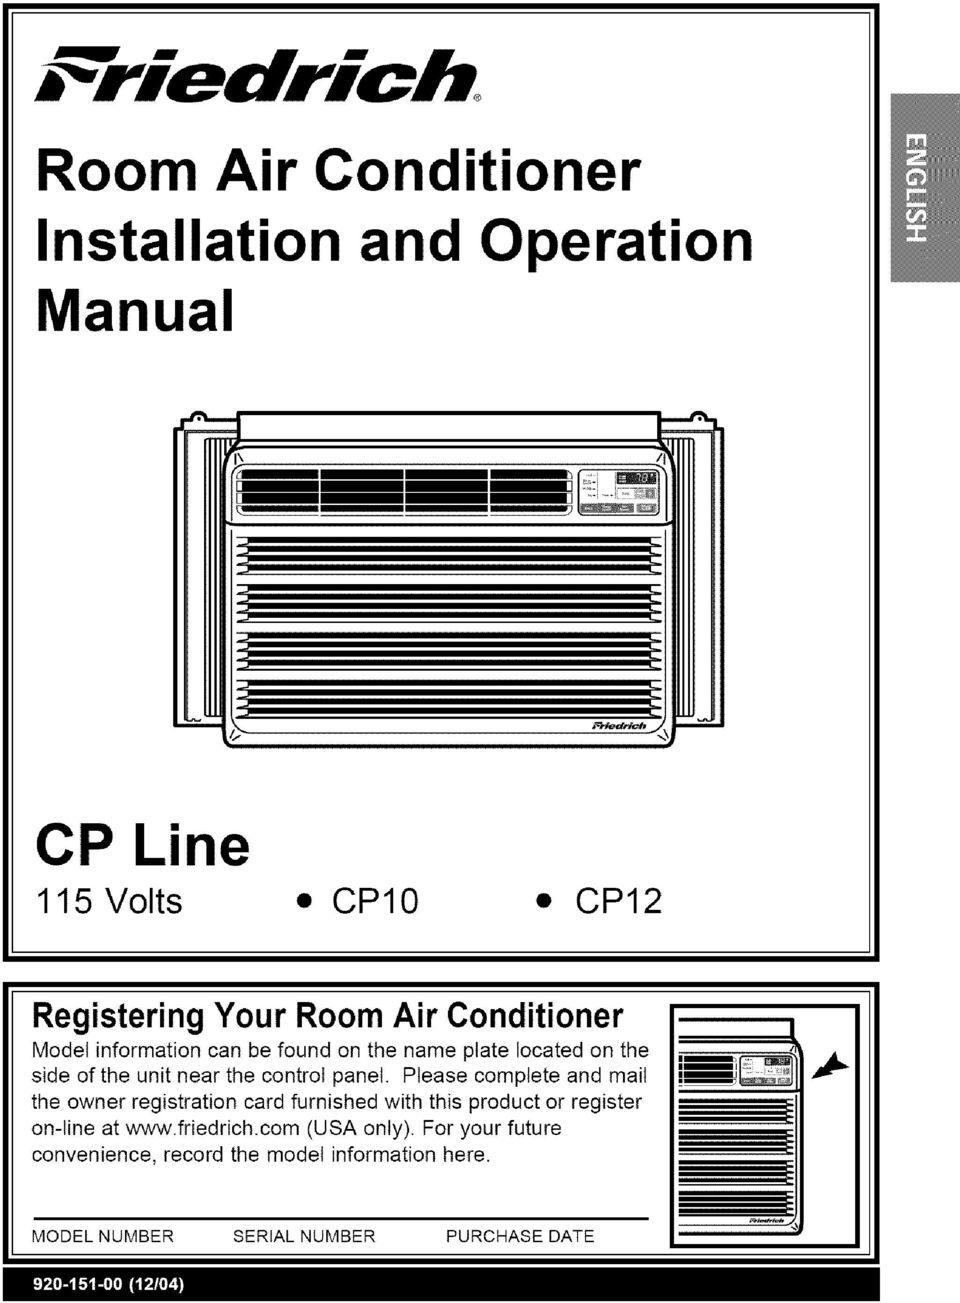 Room Air Conditioner Installation And Operation Manual Pdf Friedrich Window Unit Wiring Diagram Please Complete Mail The Owner Registration Card Furnished With This Product Or Register On